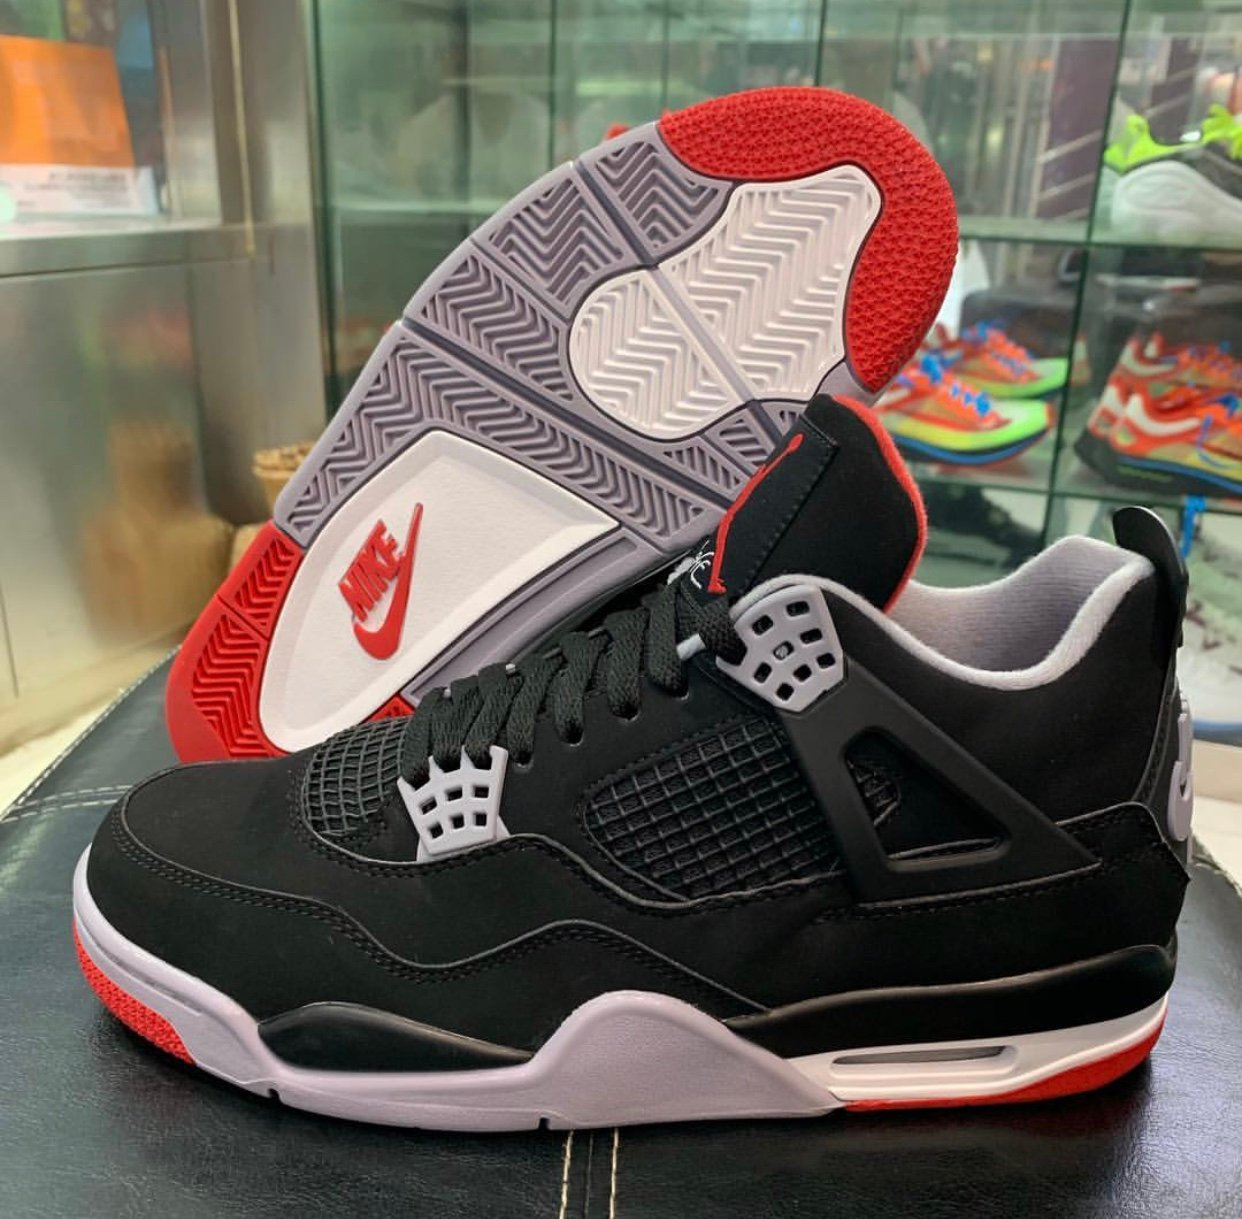 9546081fd2f5 Air Jordan 4 Bred Black Cement 2019 308497-060 Release Date